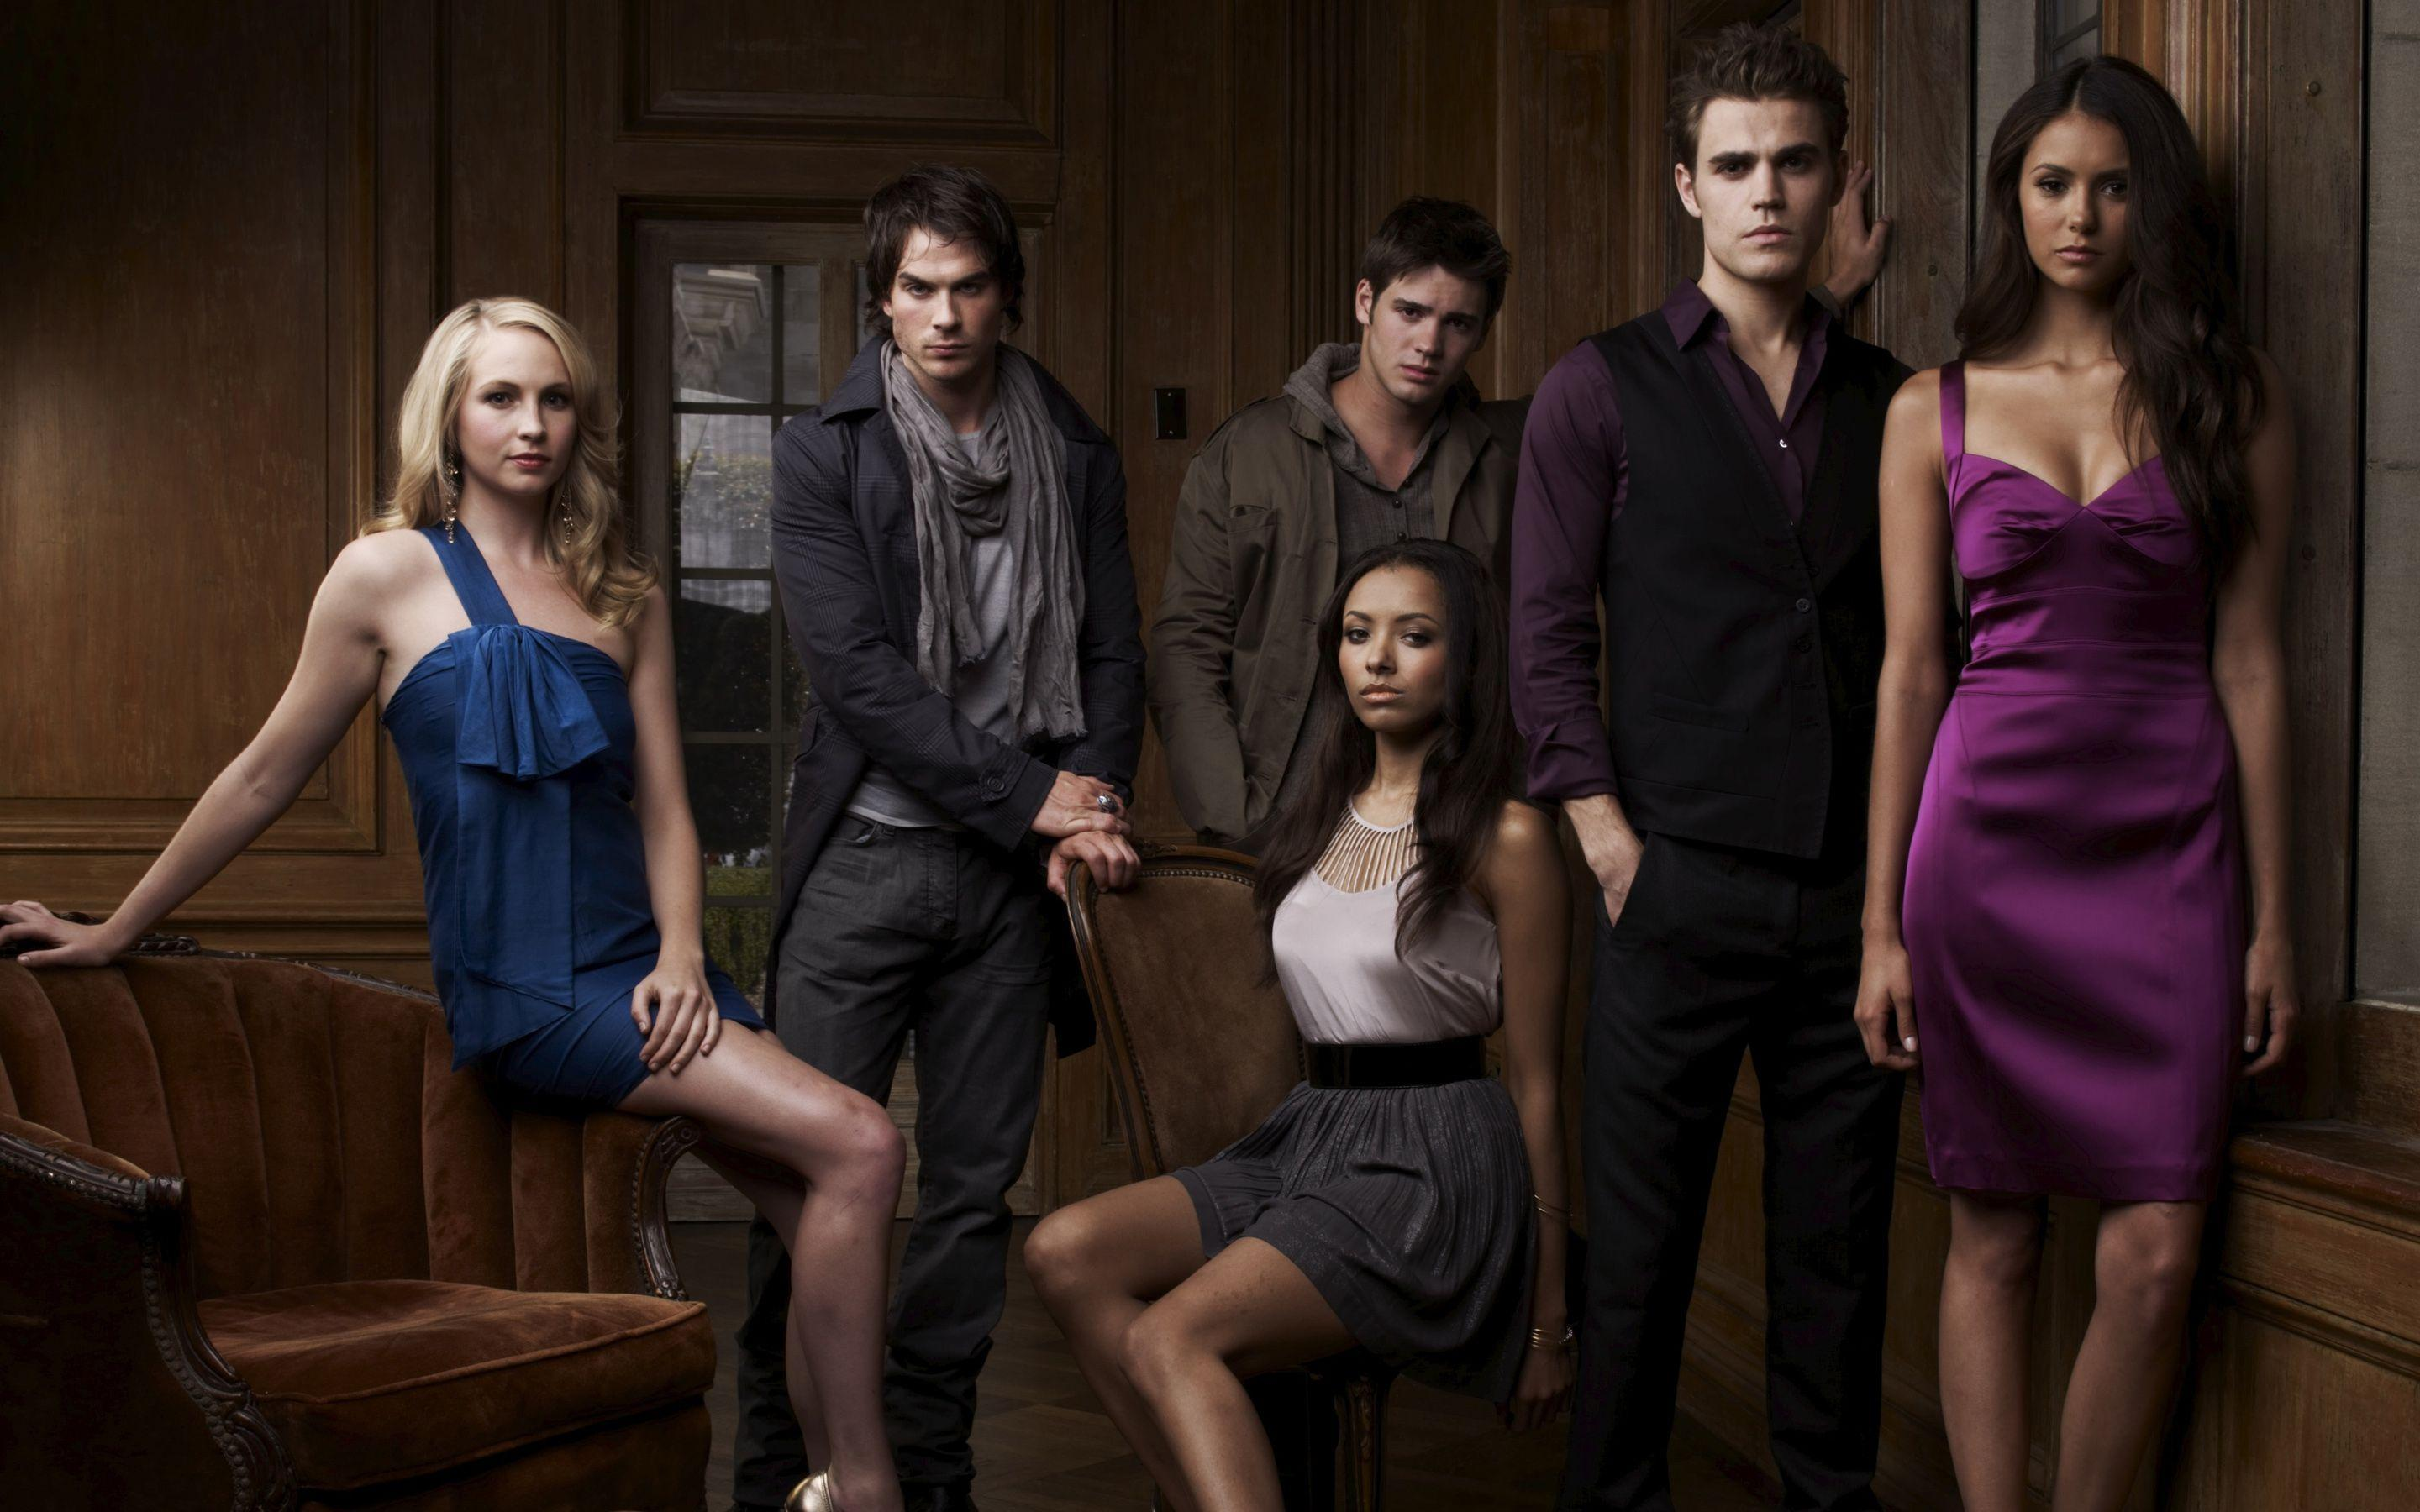 Vampire Diaries Wallpaper 12150 2880x1800 px ~ HDWallSource.com